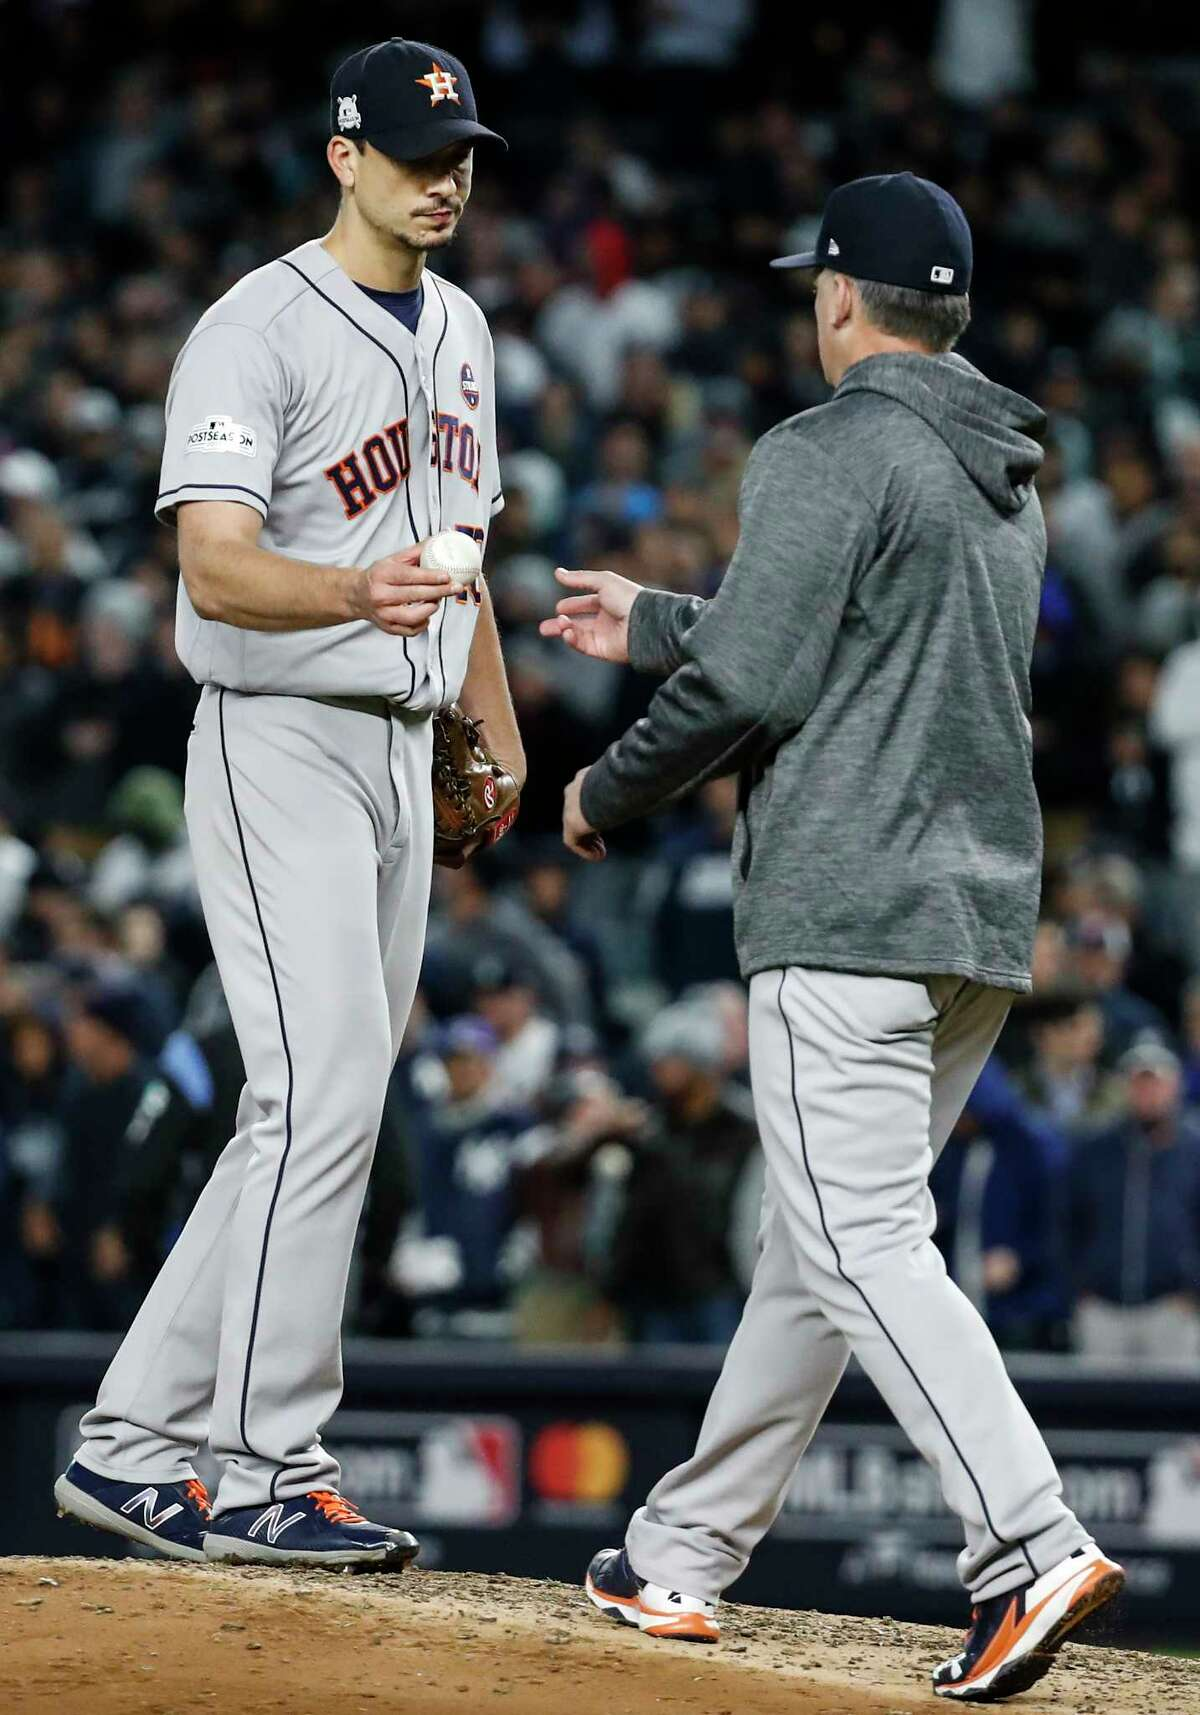 Houston Astros starting pitcher Charlie Morton (50) is taken from the game by manager A.J. Hinch during the fourth inning of Game 3 of the ALCS against the New York Yankees at Yankee Stadium on Monday, Oct. 16, 2017, in New York.